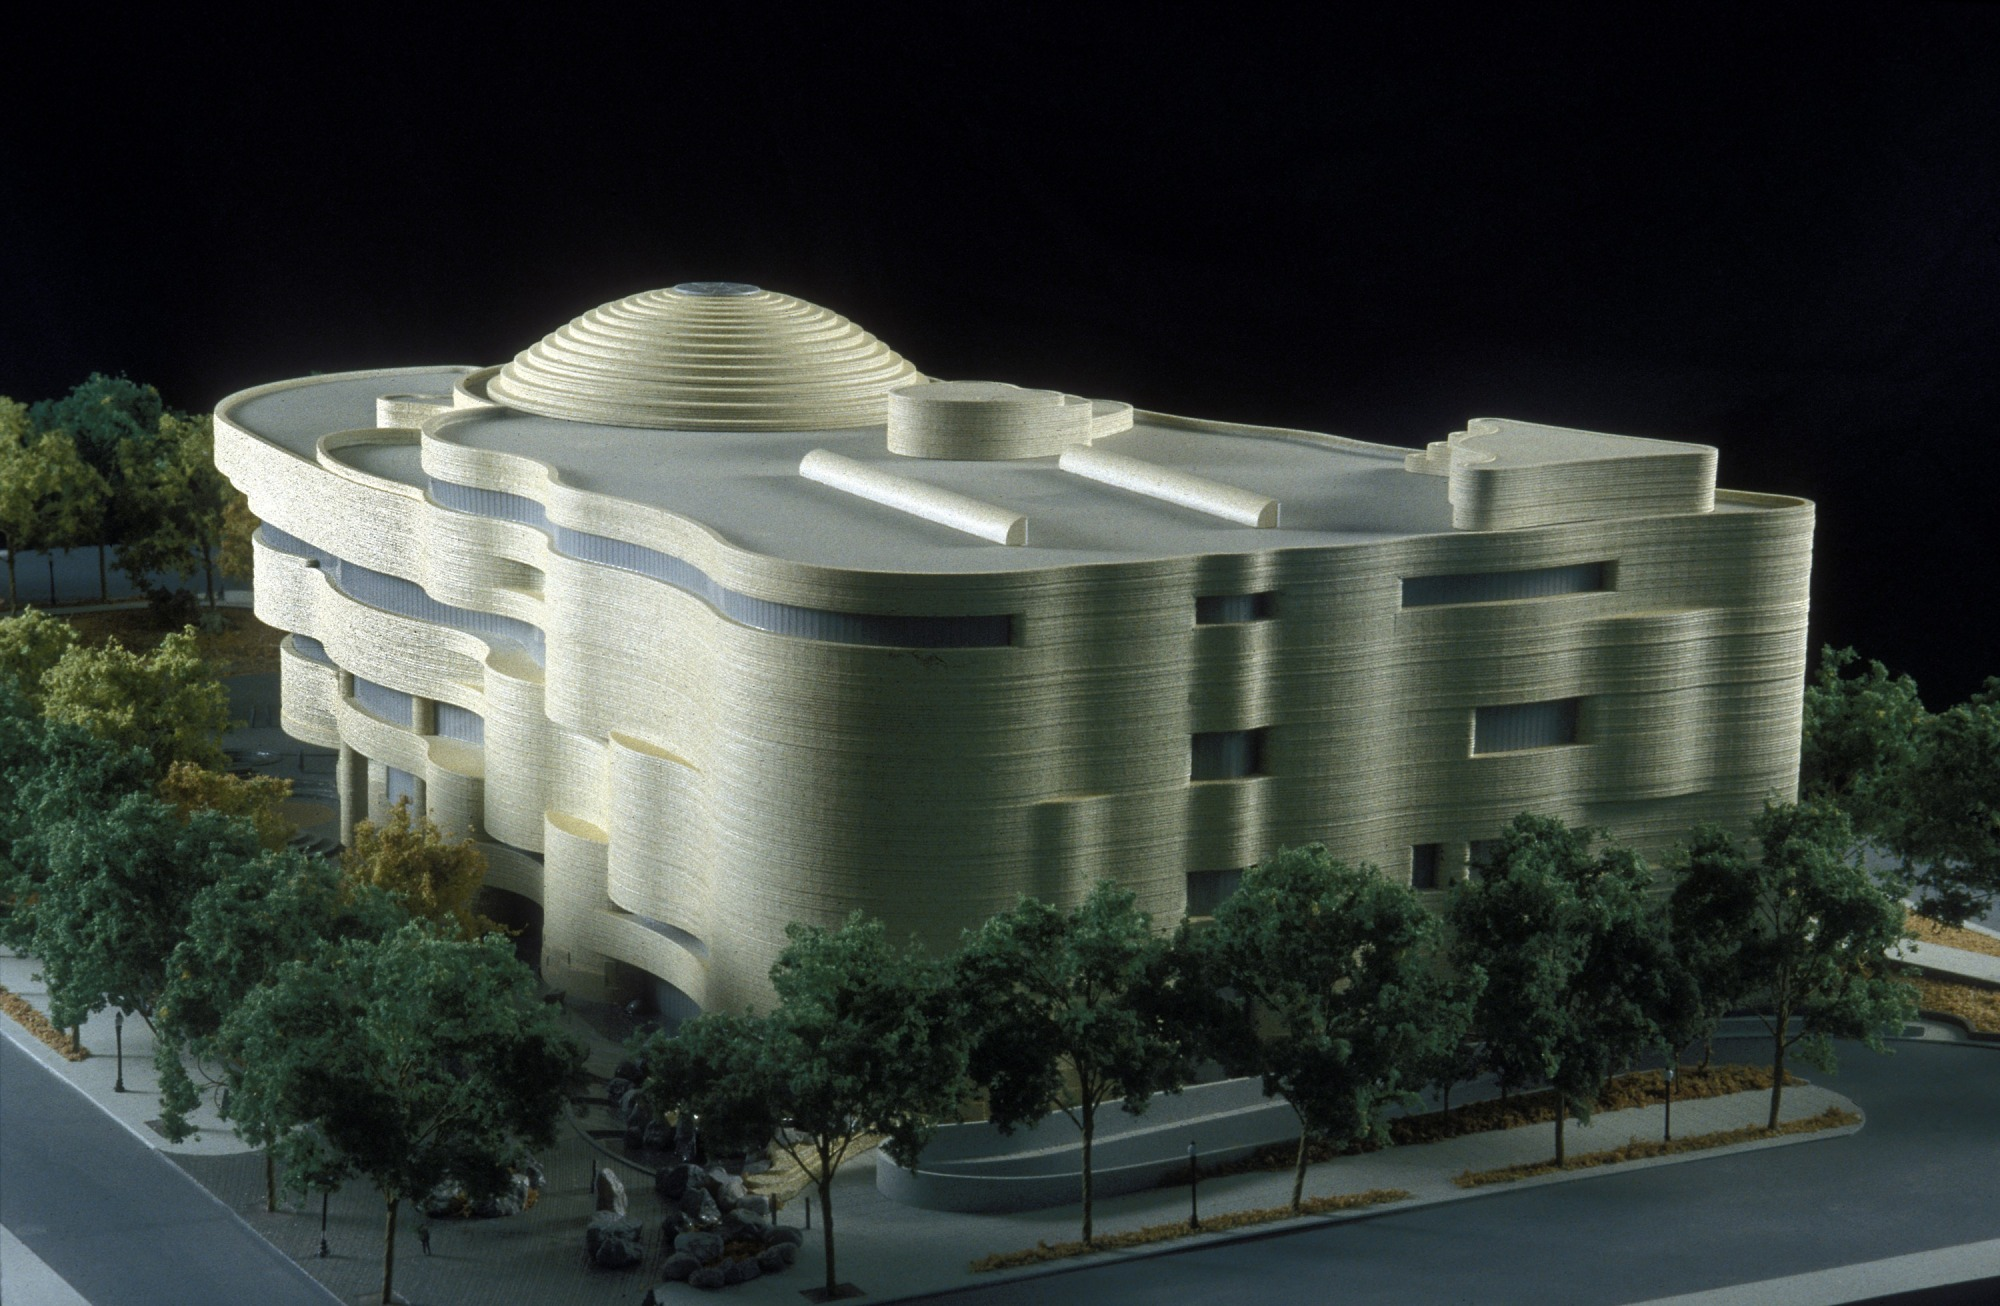 NMAI Model, by Strauss, Richard, February 16, 2001, Smithsonian Archives - History Div, 2001-1170.